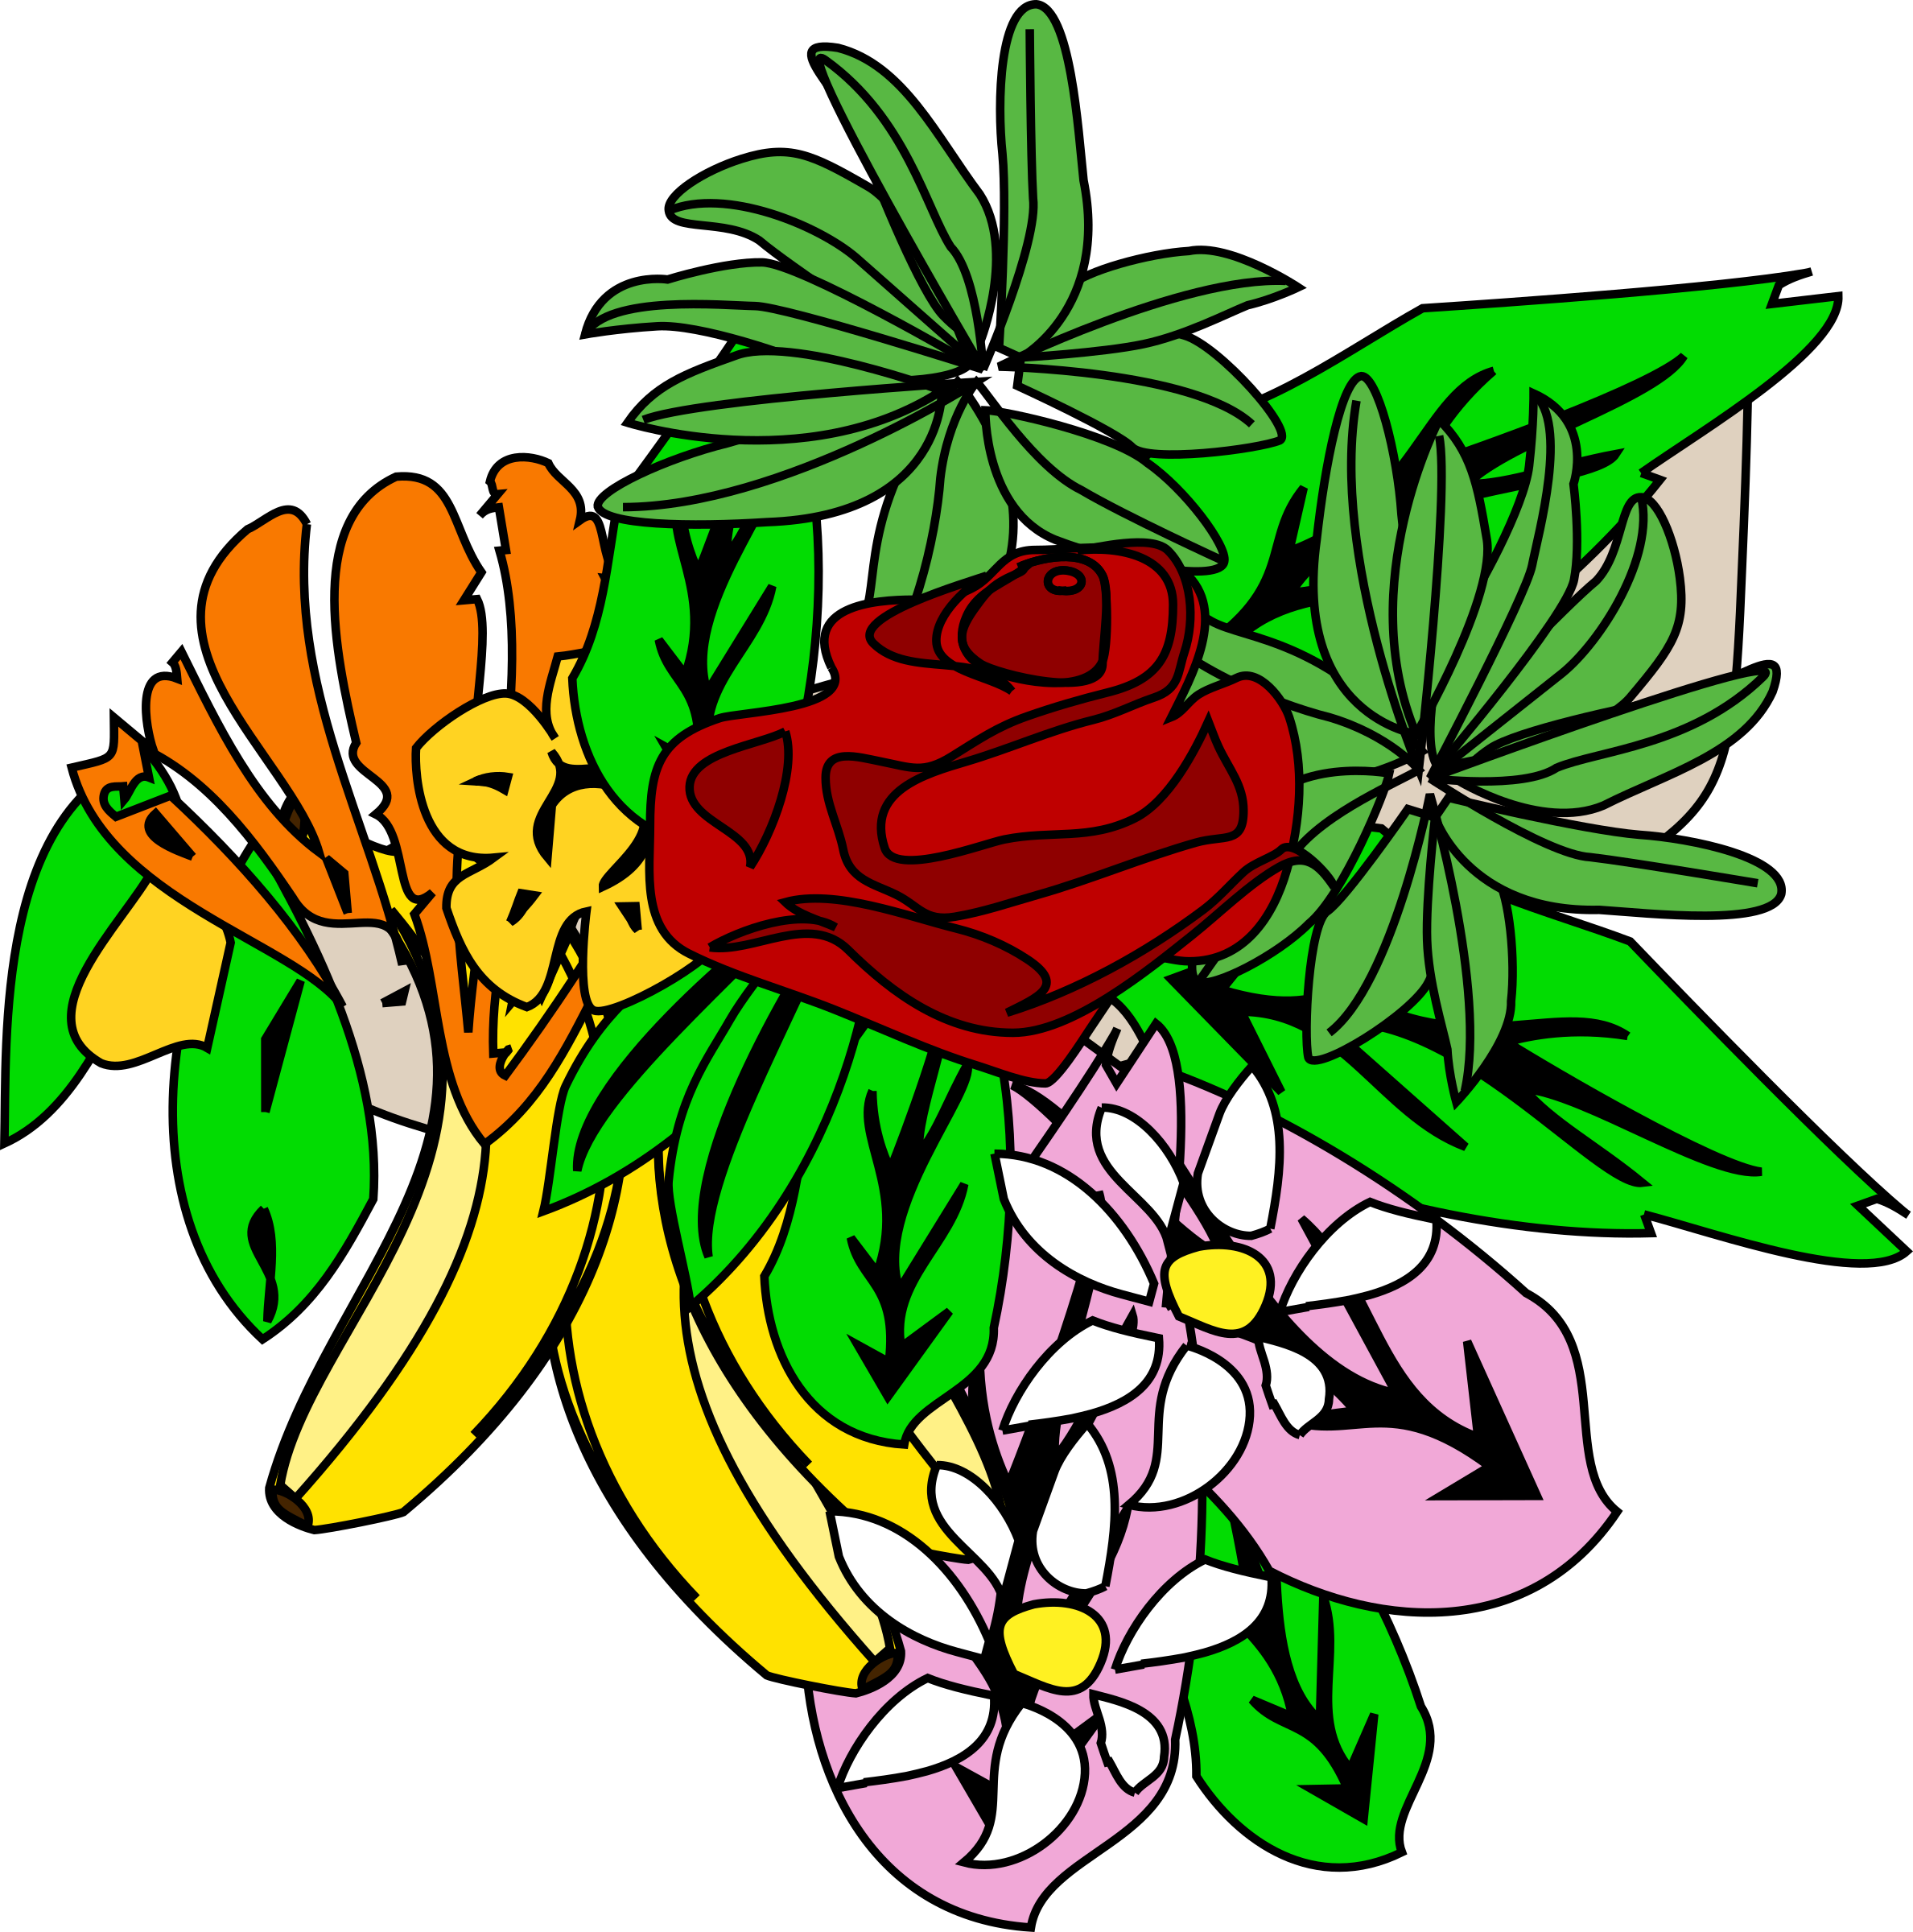 Flower group clipart royalty free library Clipart - Food and flower design 2 royalty free library